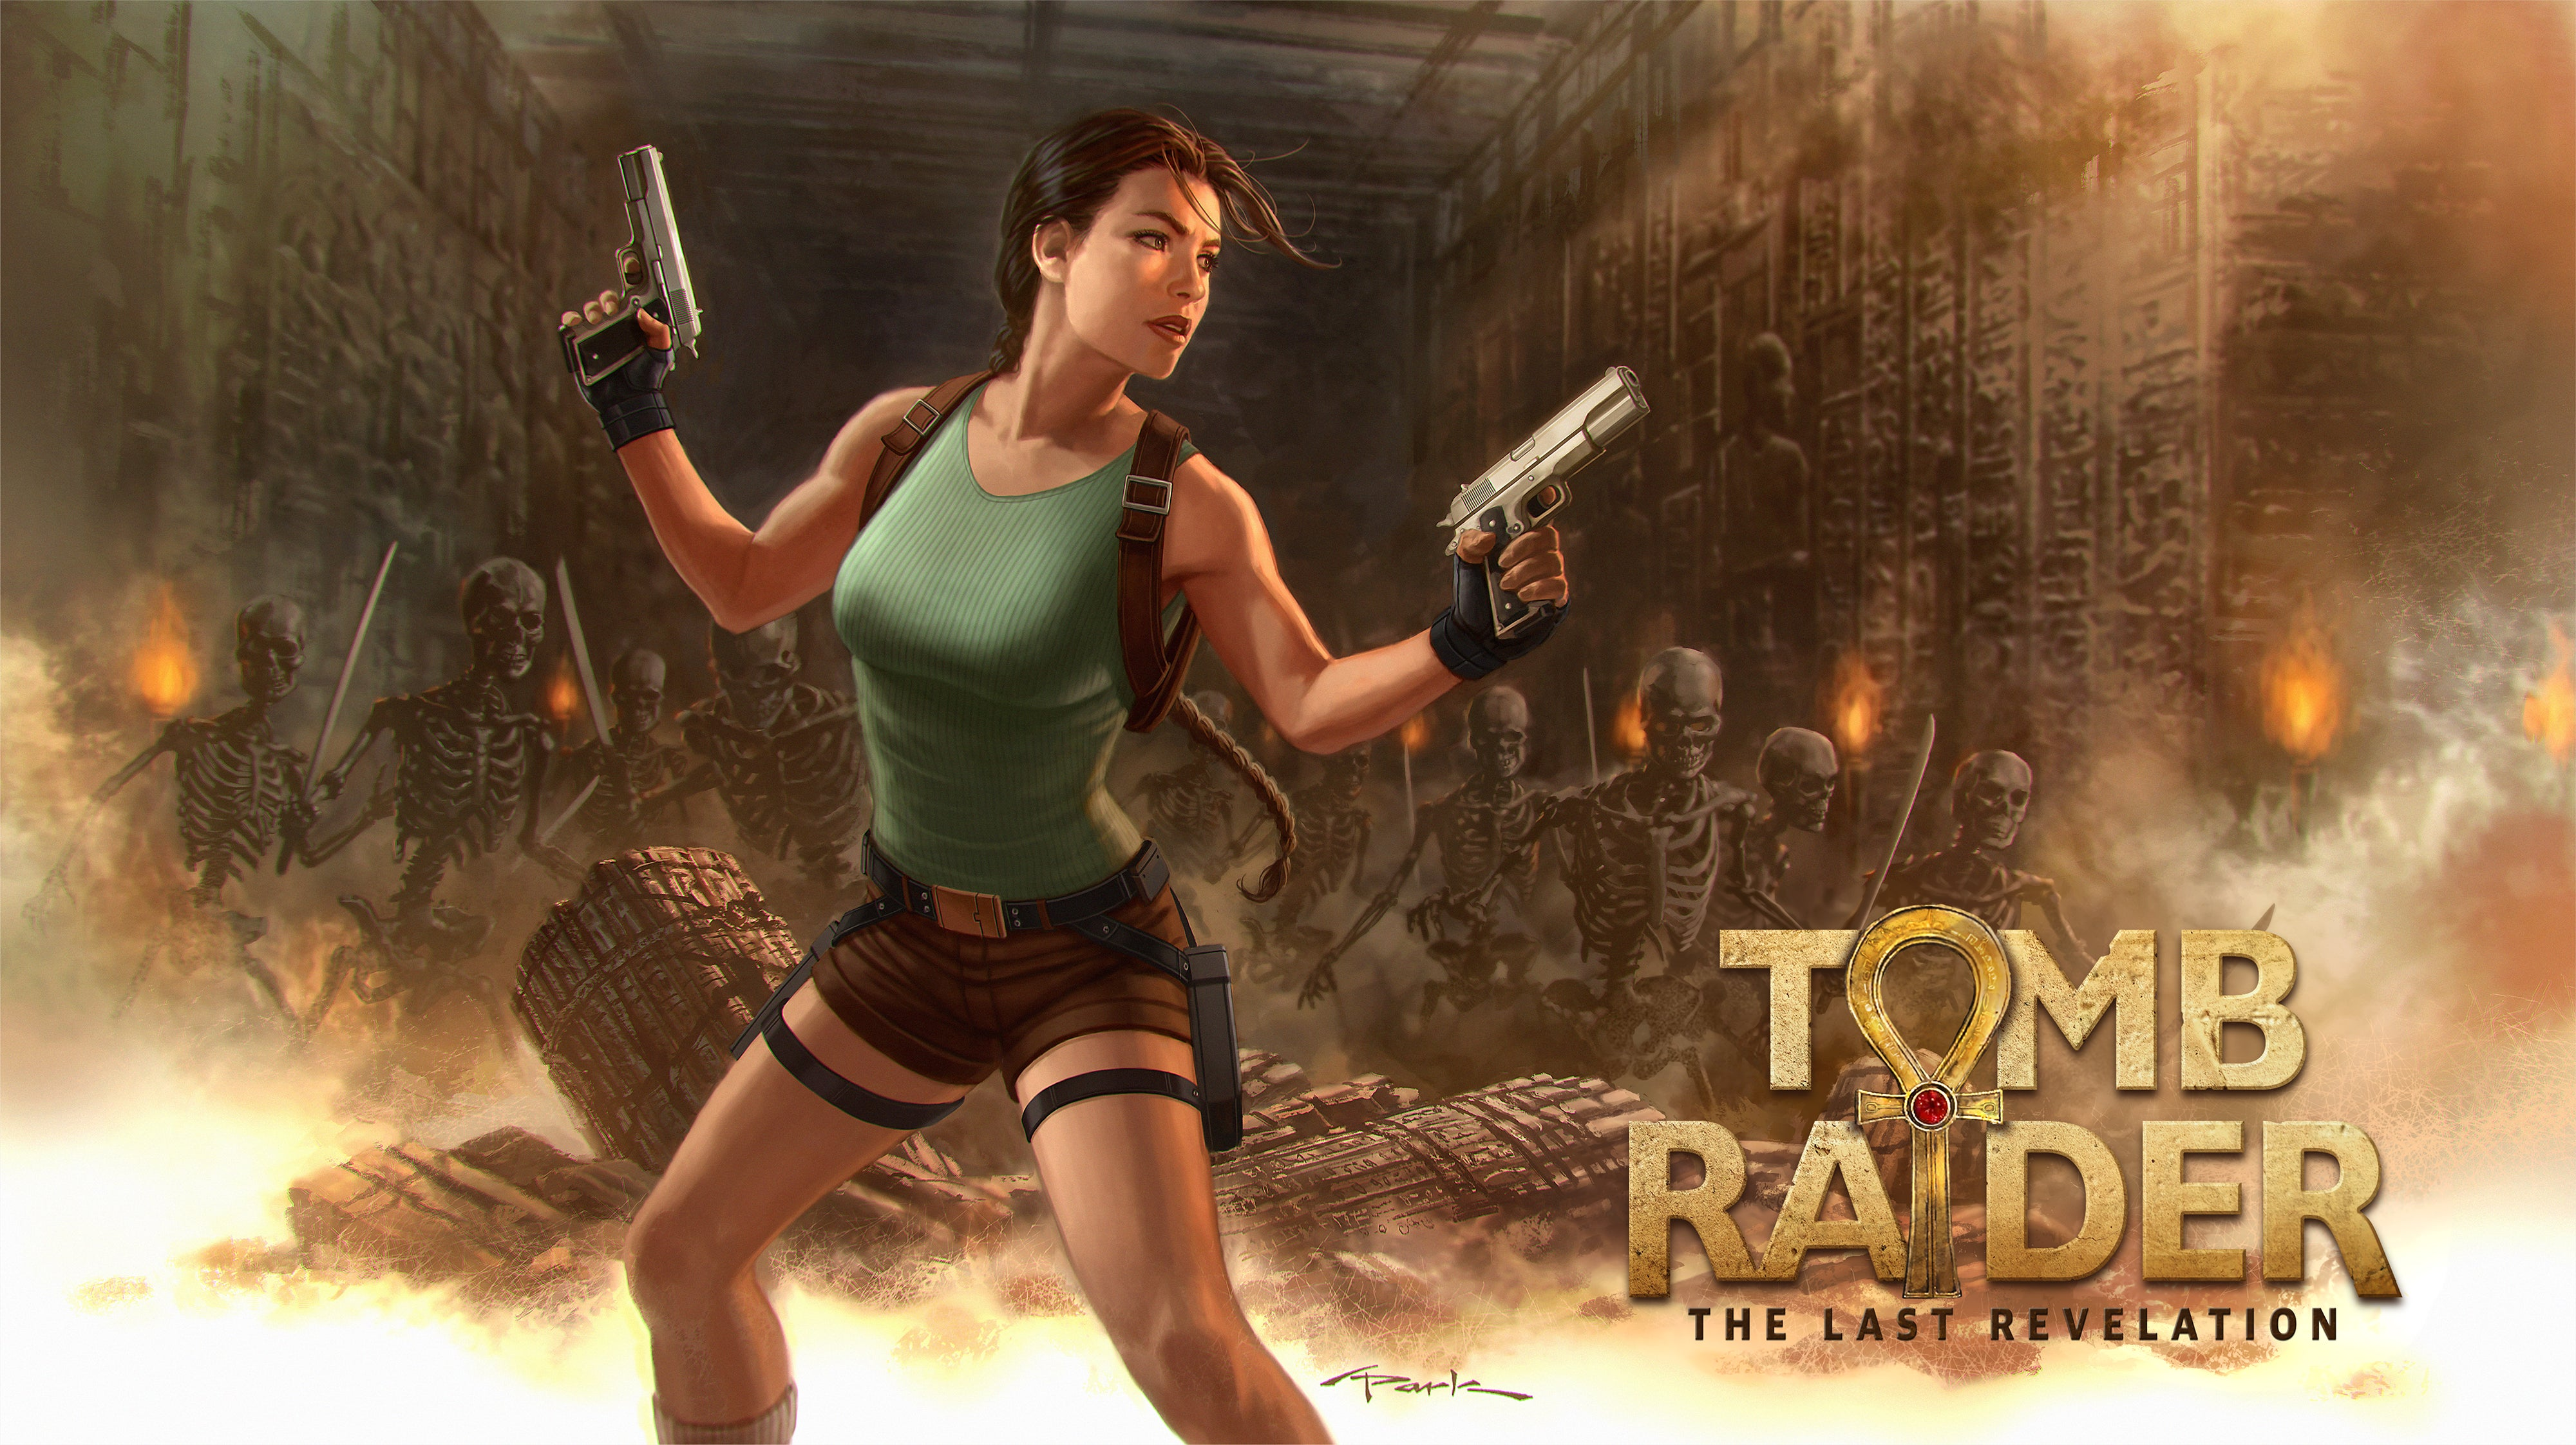 Reimagined Tomb Raider IV box art by Andy Park features Lara holding up two pistols with a horde of skeleton knights behind her in ancient ruins